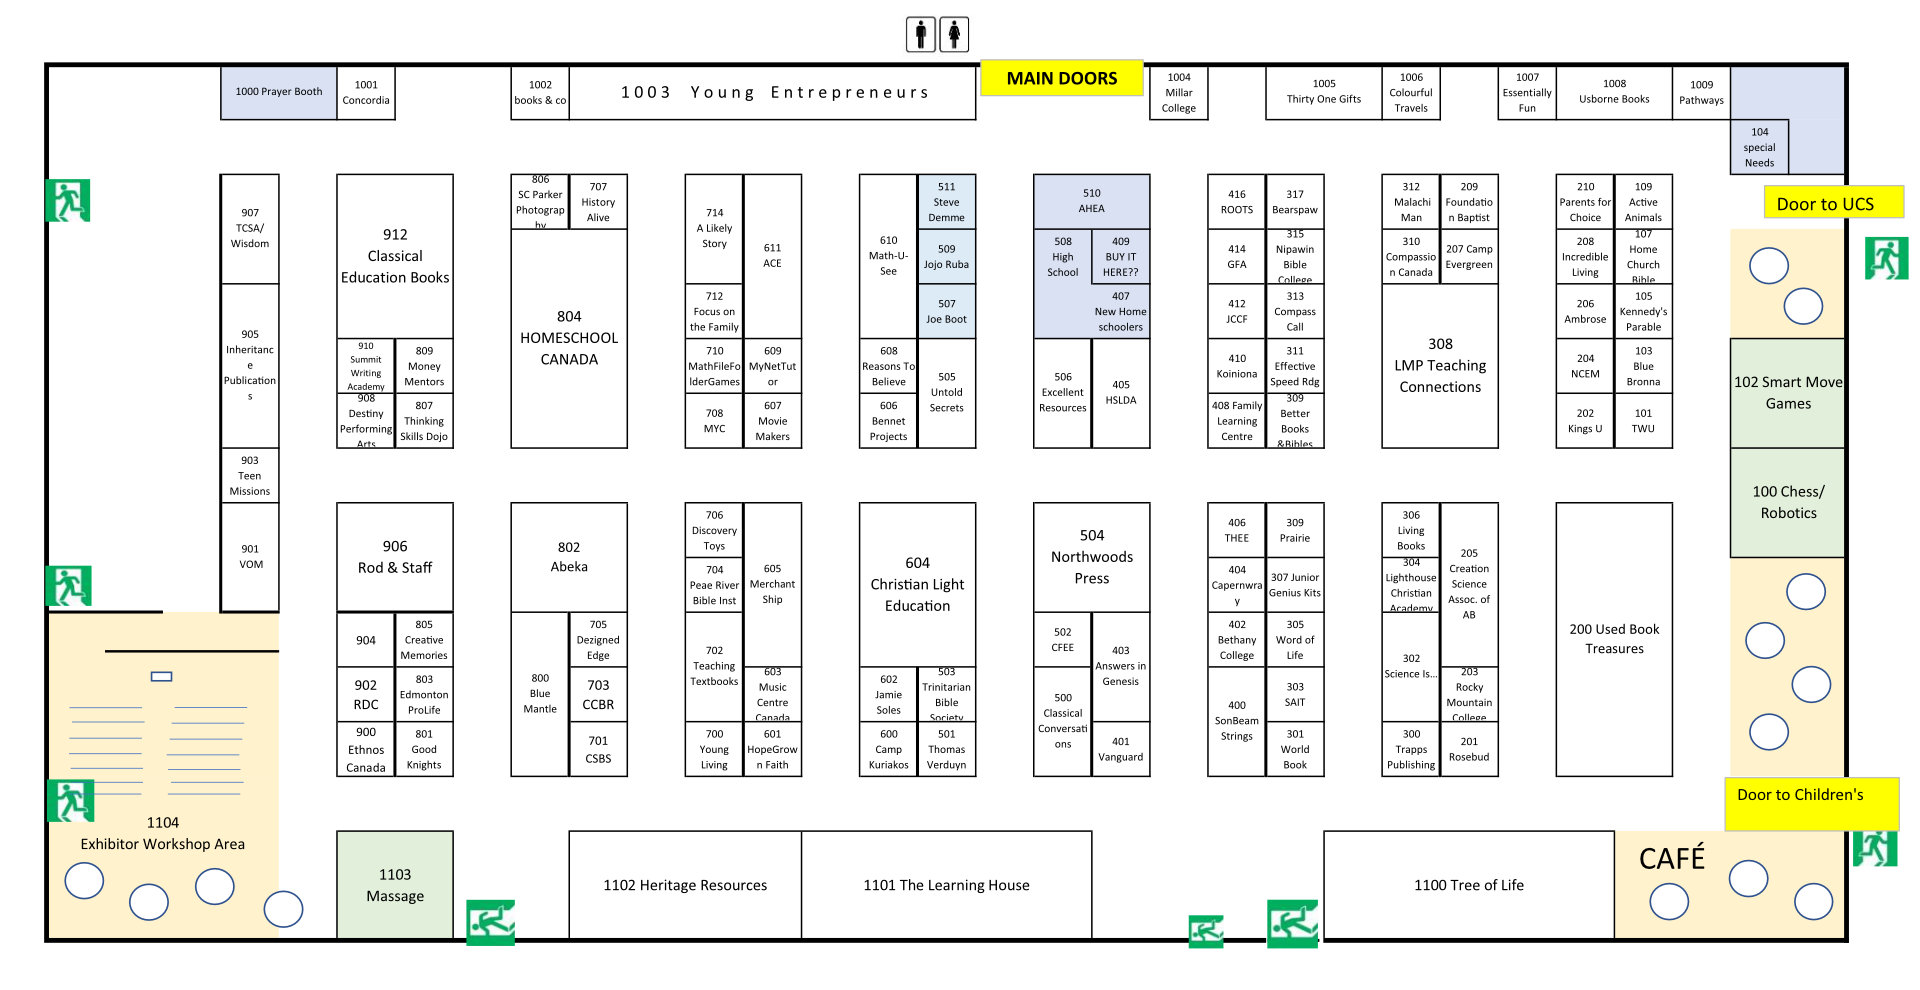 Exhibit Hall Floor Plan